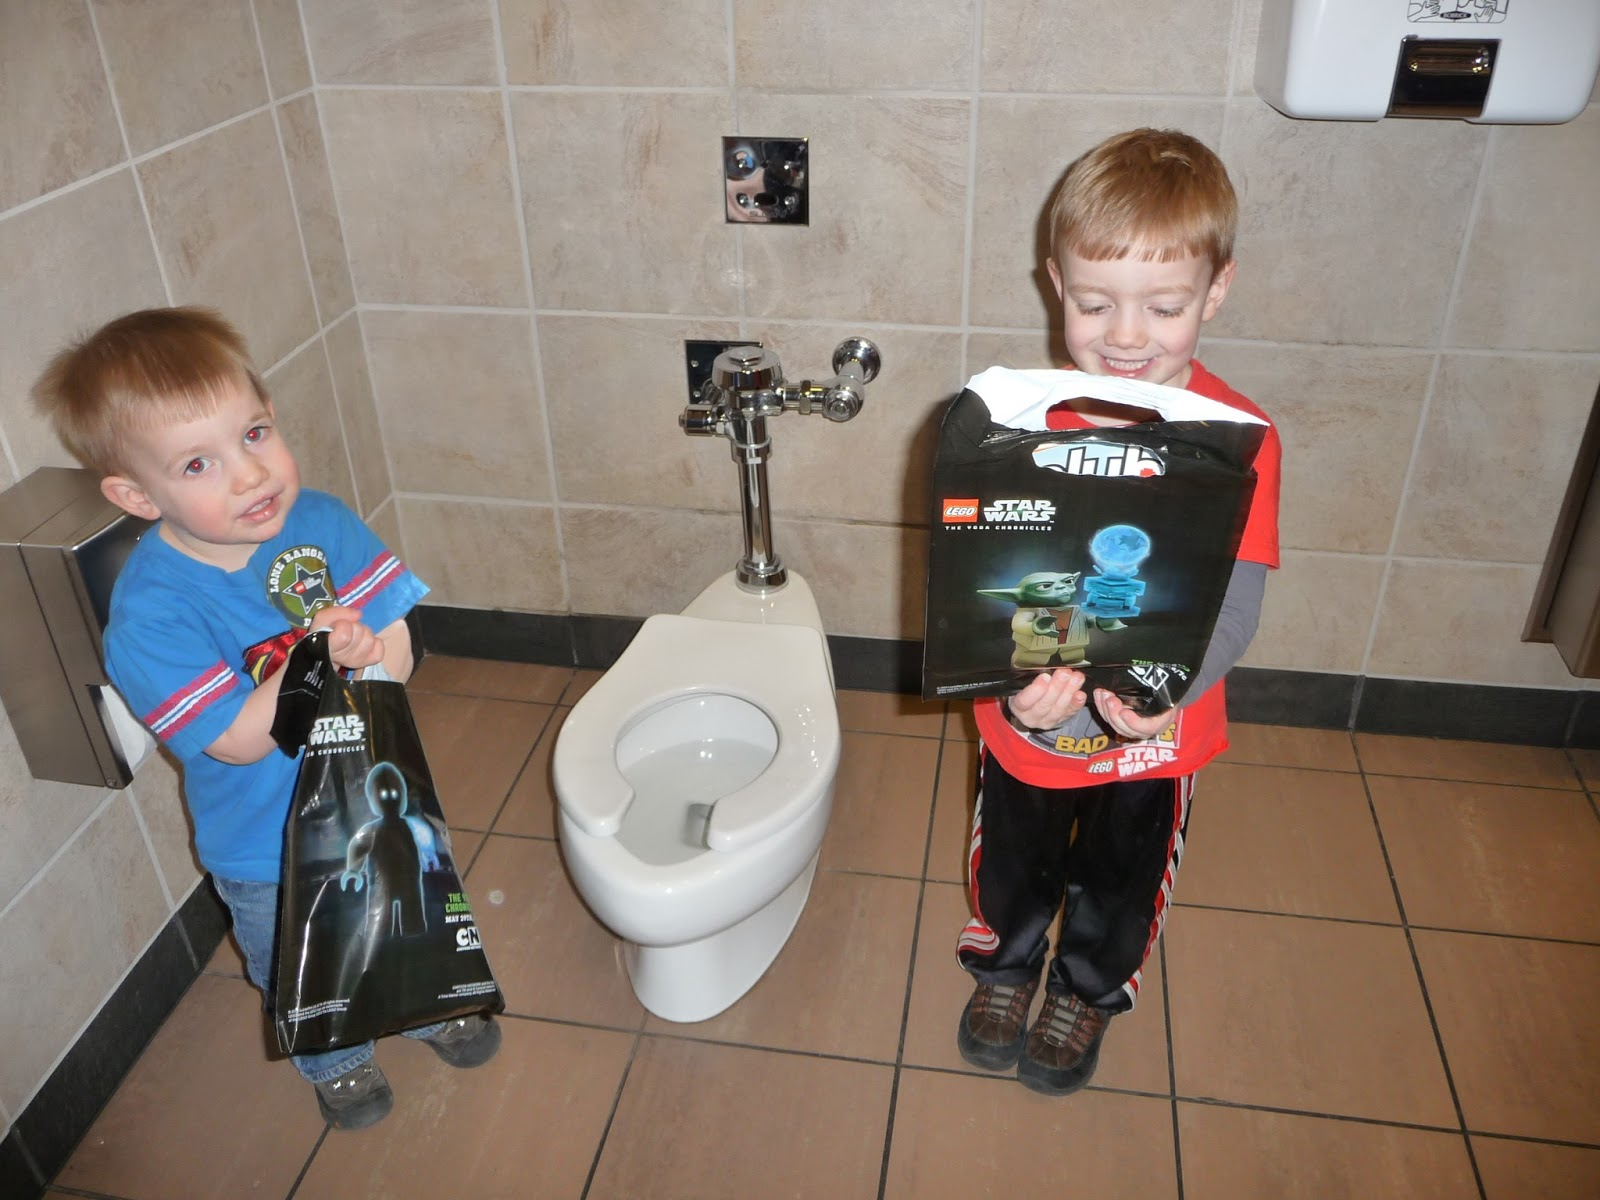 On Our Way Home We Stopped By The Alderwood Mall To Go Lego Store And Found Cutest Little Potty In Malls Family Bathroom